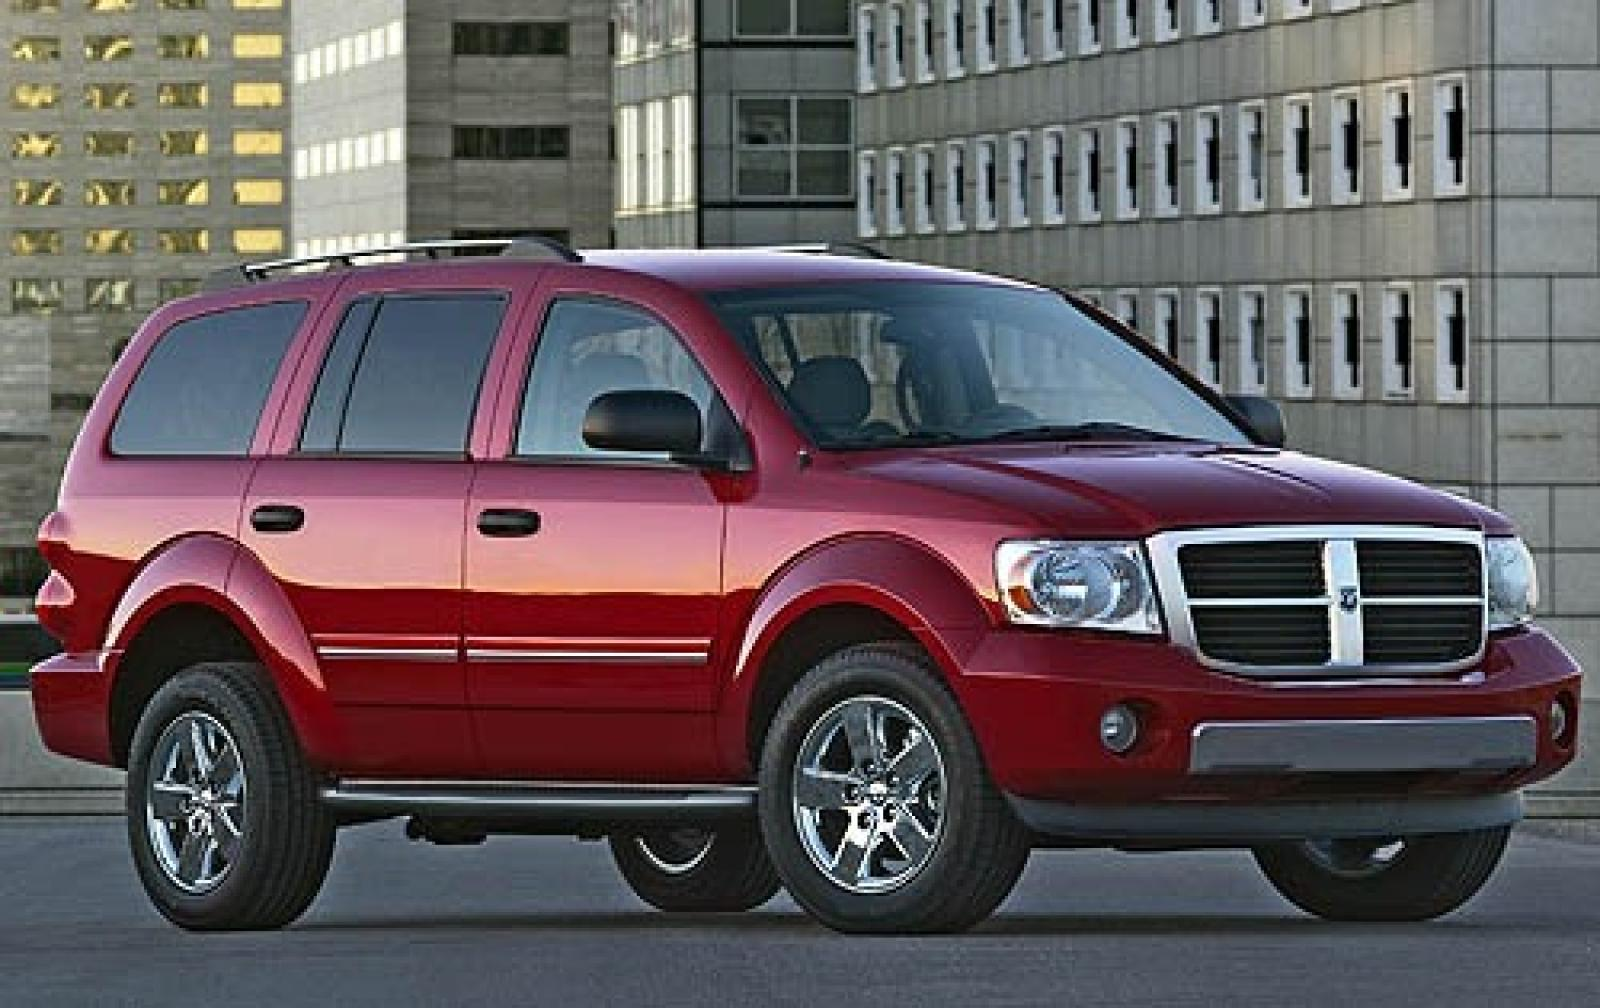 2007 dodge durango information and photos zombiedrive